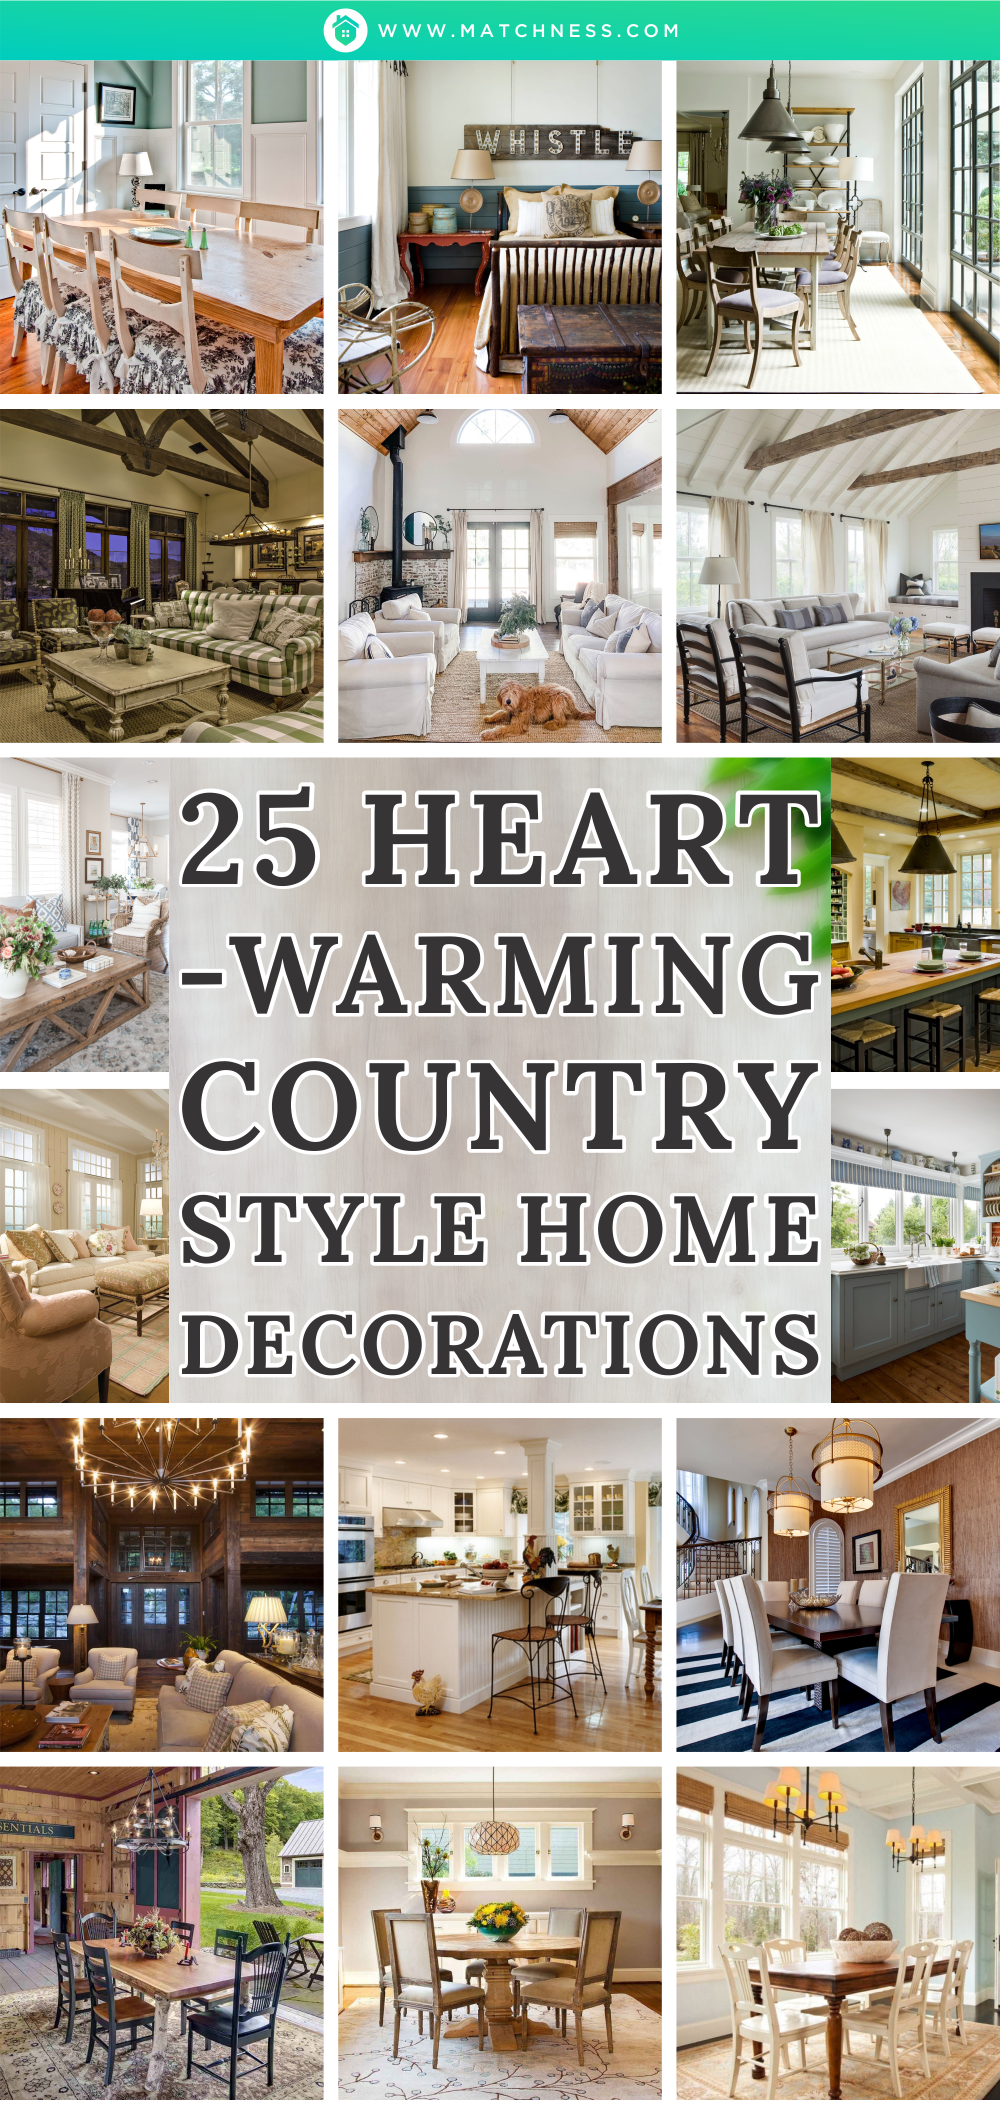 25-heart-warming-country-style-home-decorations1